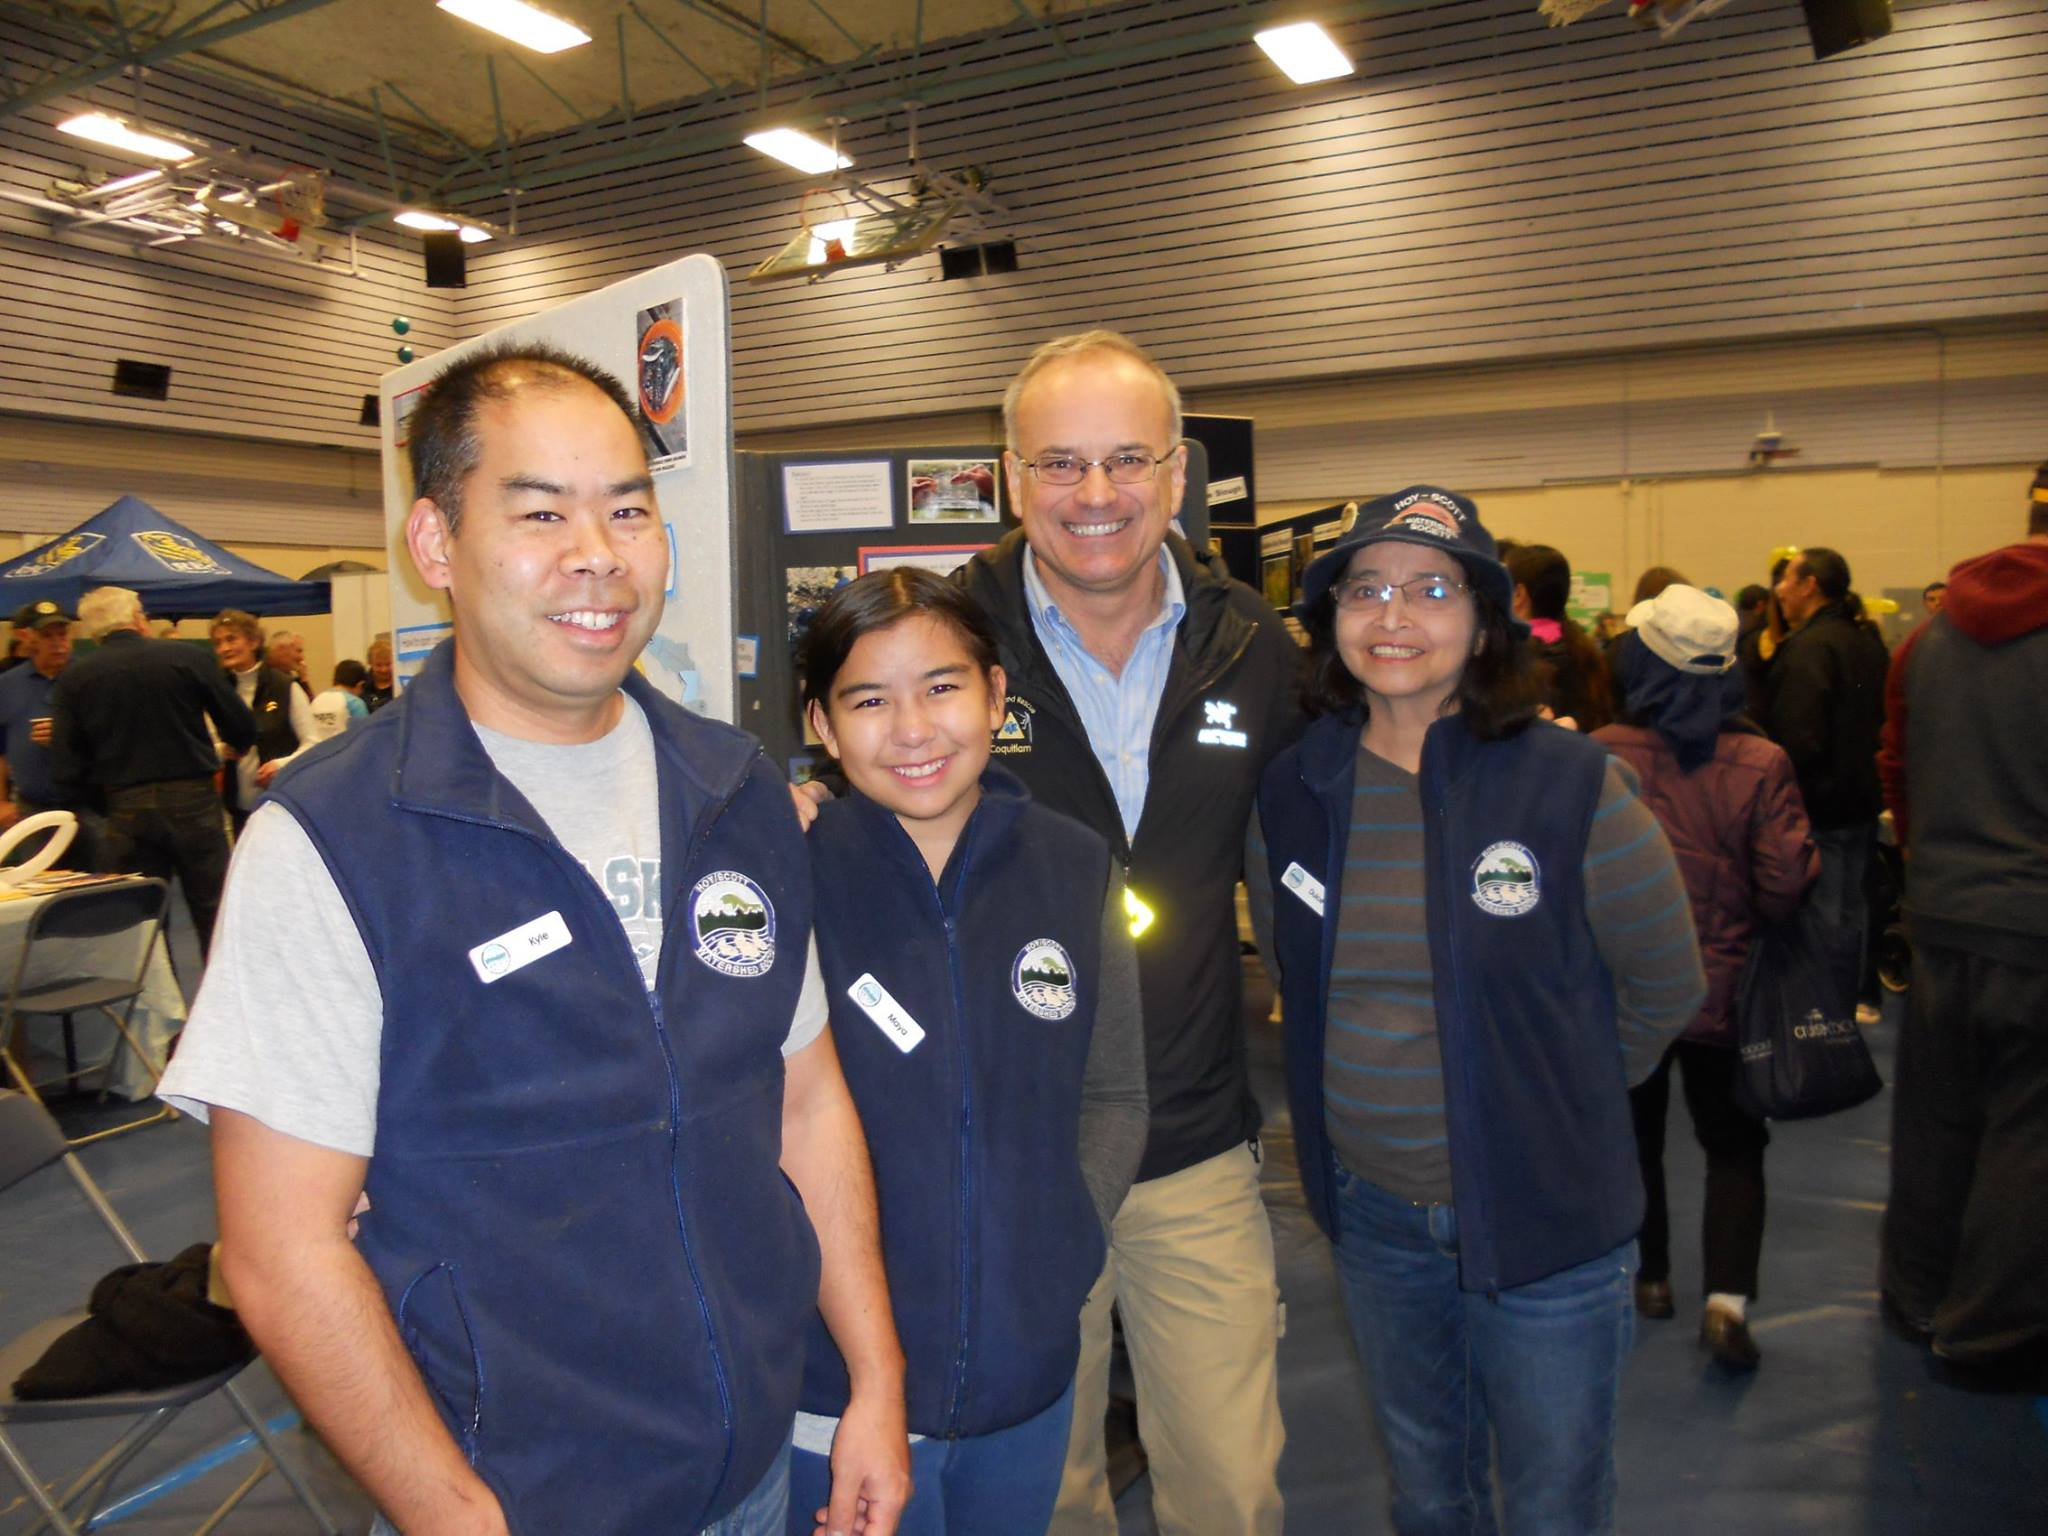 Left to right: Kyle, Mia, Coquitlam mayor Richard Stewart, and Dulce